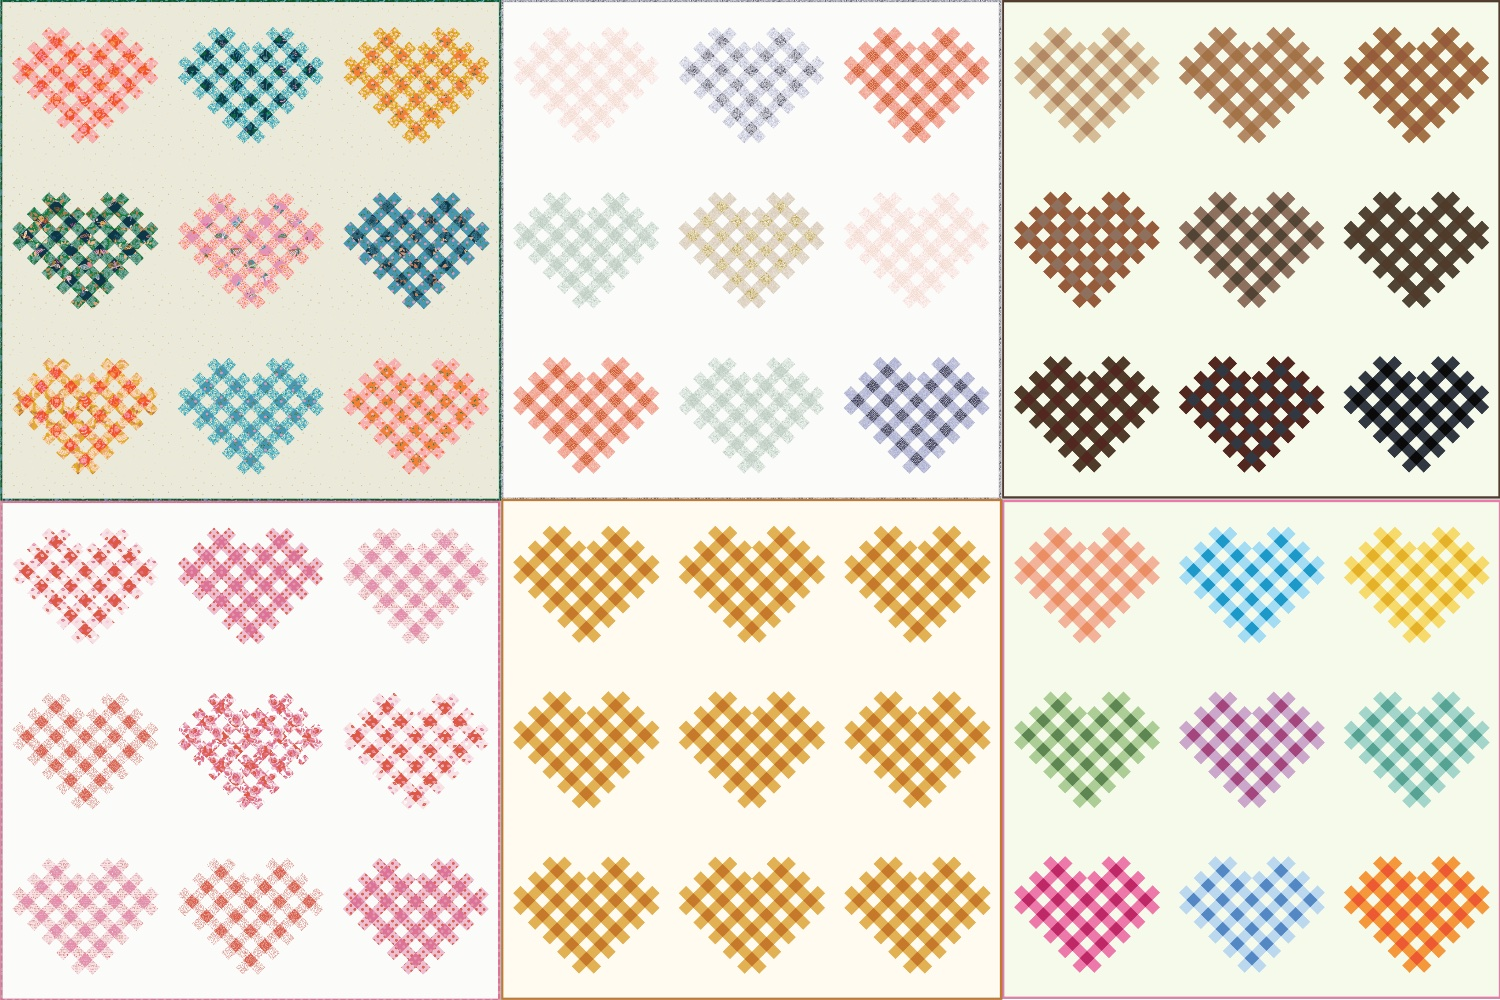 Woven Hearts Quilt Mock-Ups